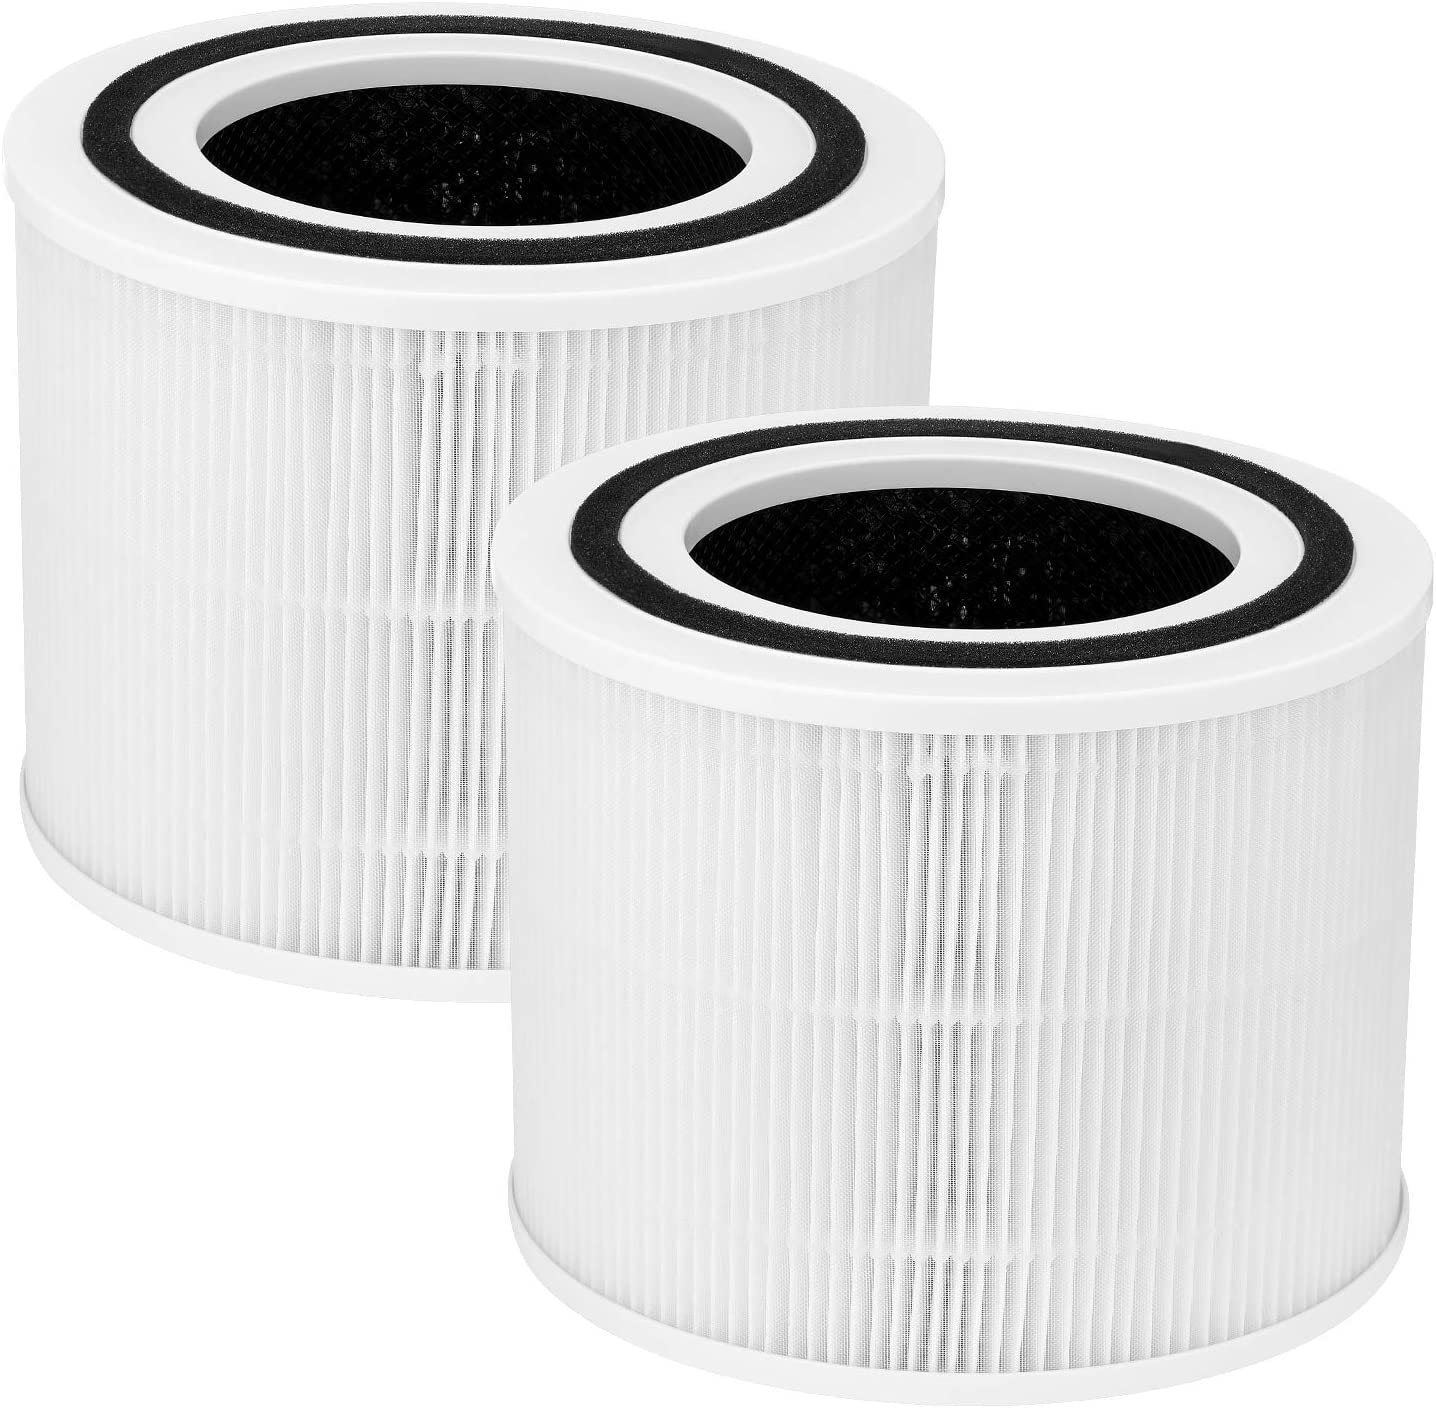 isinlive 2 Pack Core 300 H13 Denver Mall True Filter Replacement HEPA Super special price Grade